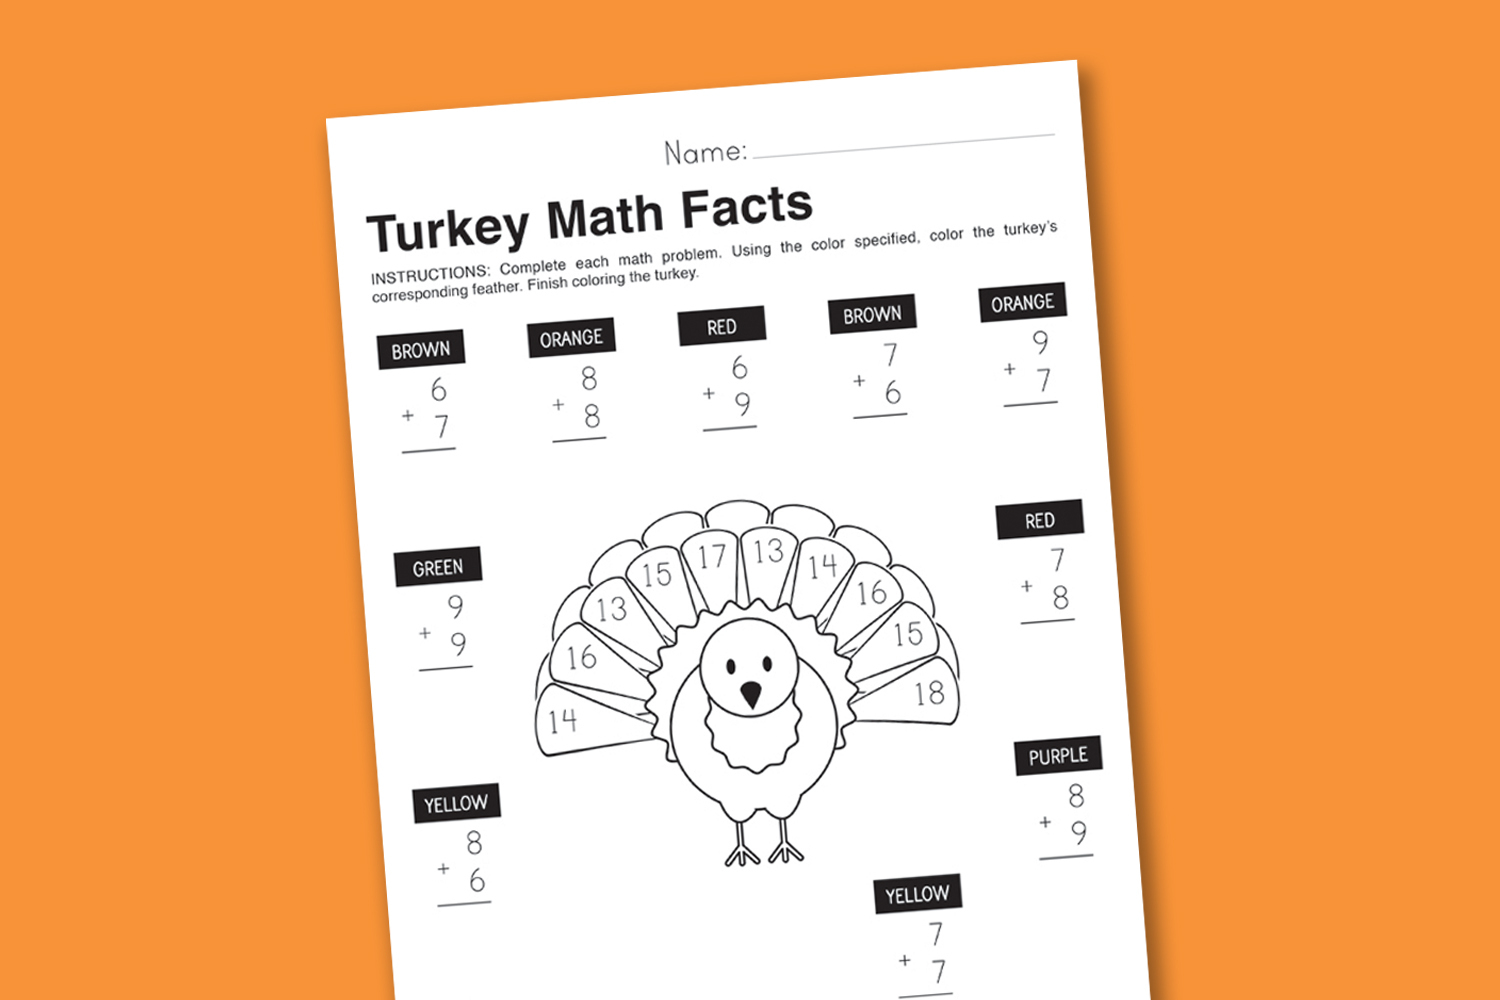 Worksheet Wednesday: Turkey Math Facts - Paging Supermom | Printable Thanksgiving Math Worksheets